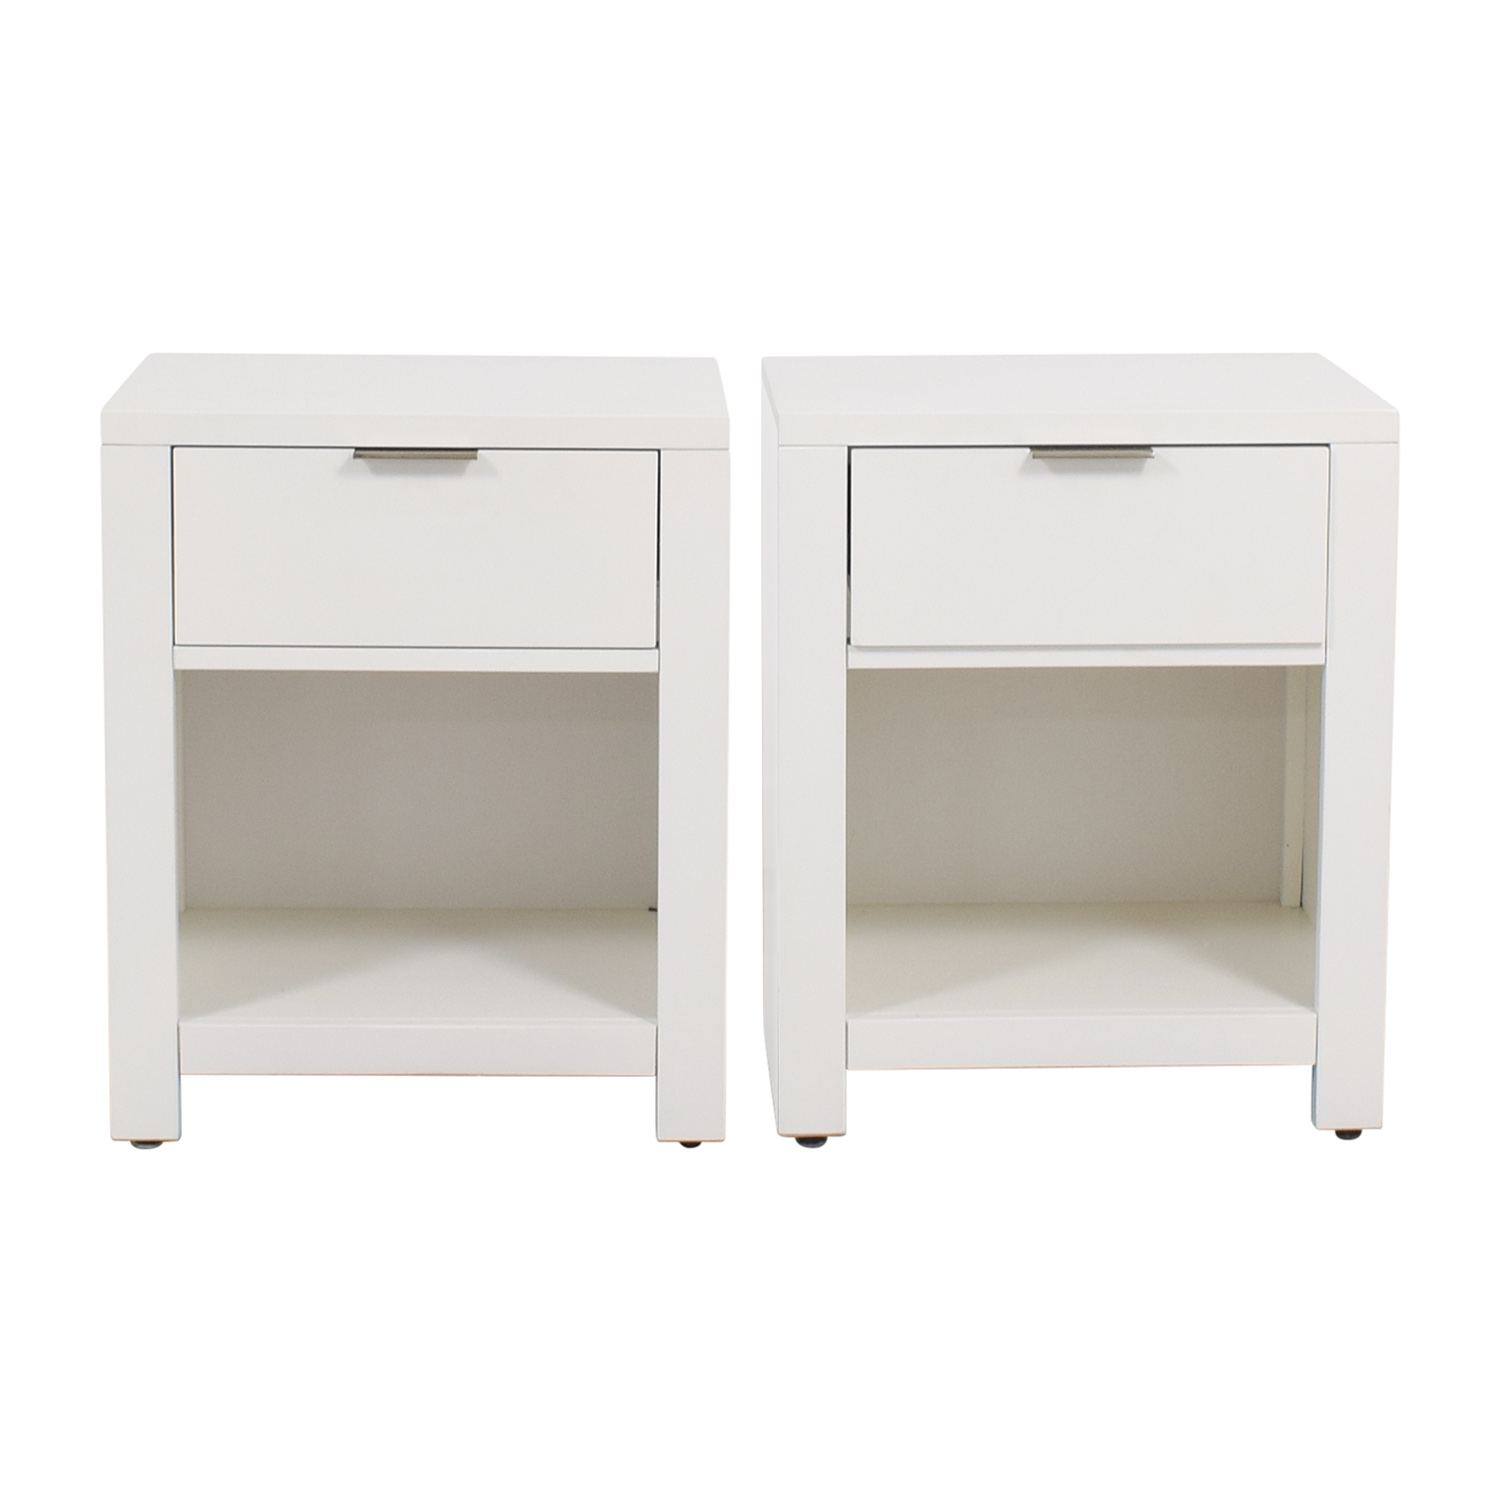 Macys Macys White Nightstands used